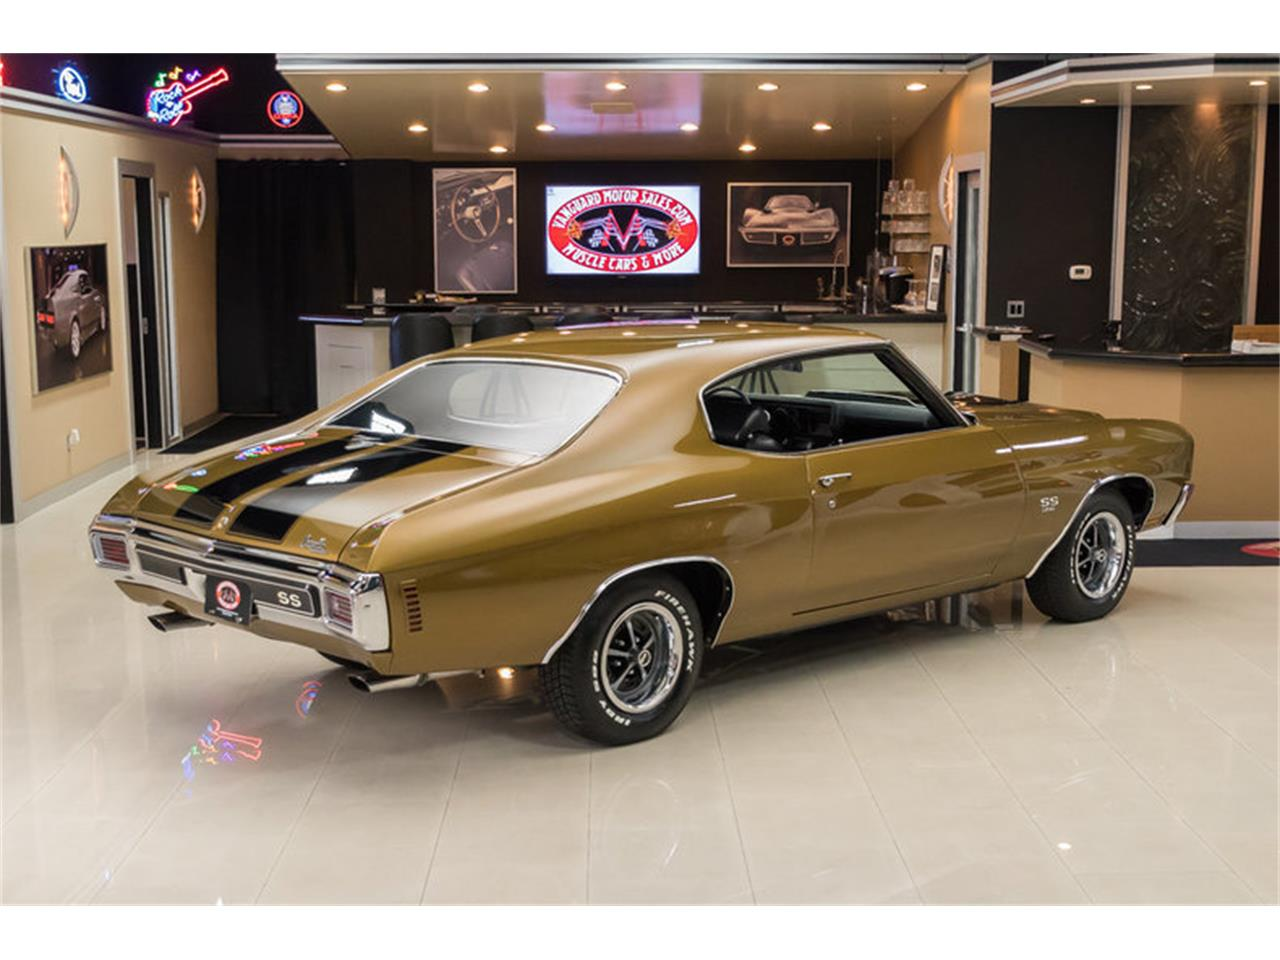 Large Picture of 1970 Chevrolet Chevelle located in Michigan - $64,900.00 - MFJD